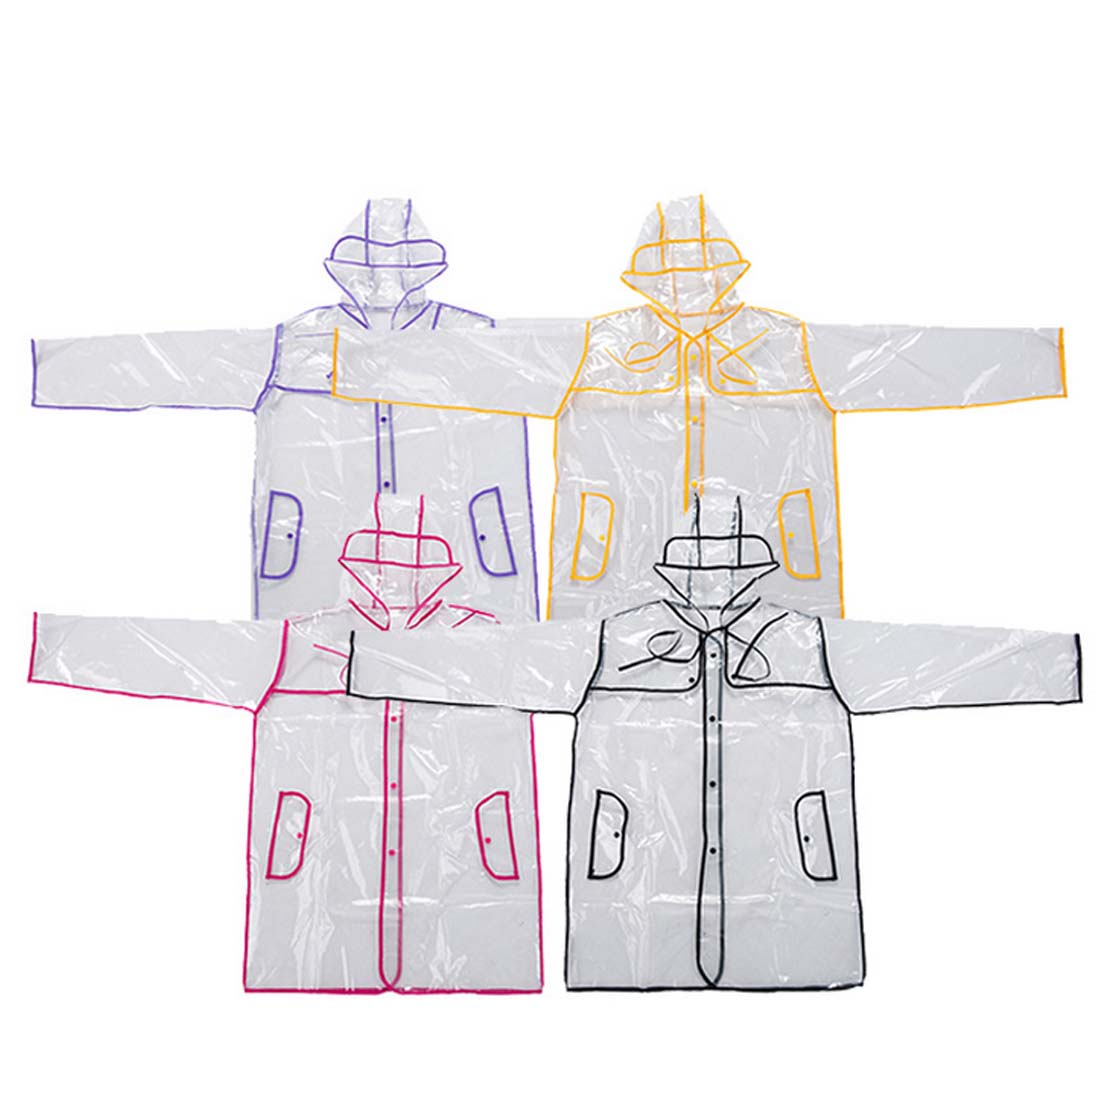 1 pcs random color Fashion women's transparent EVA raincoat outdoor travel waterproof rain coat